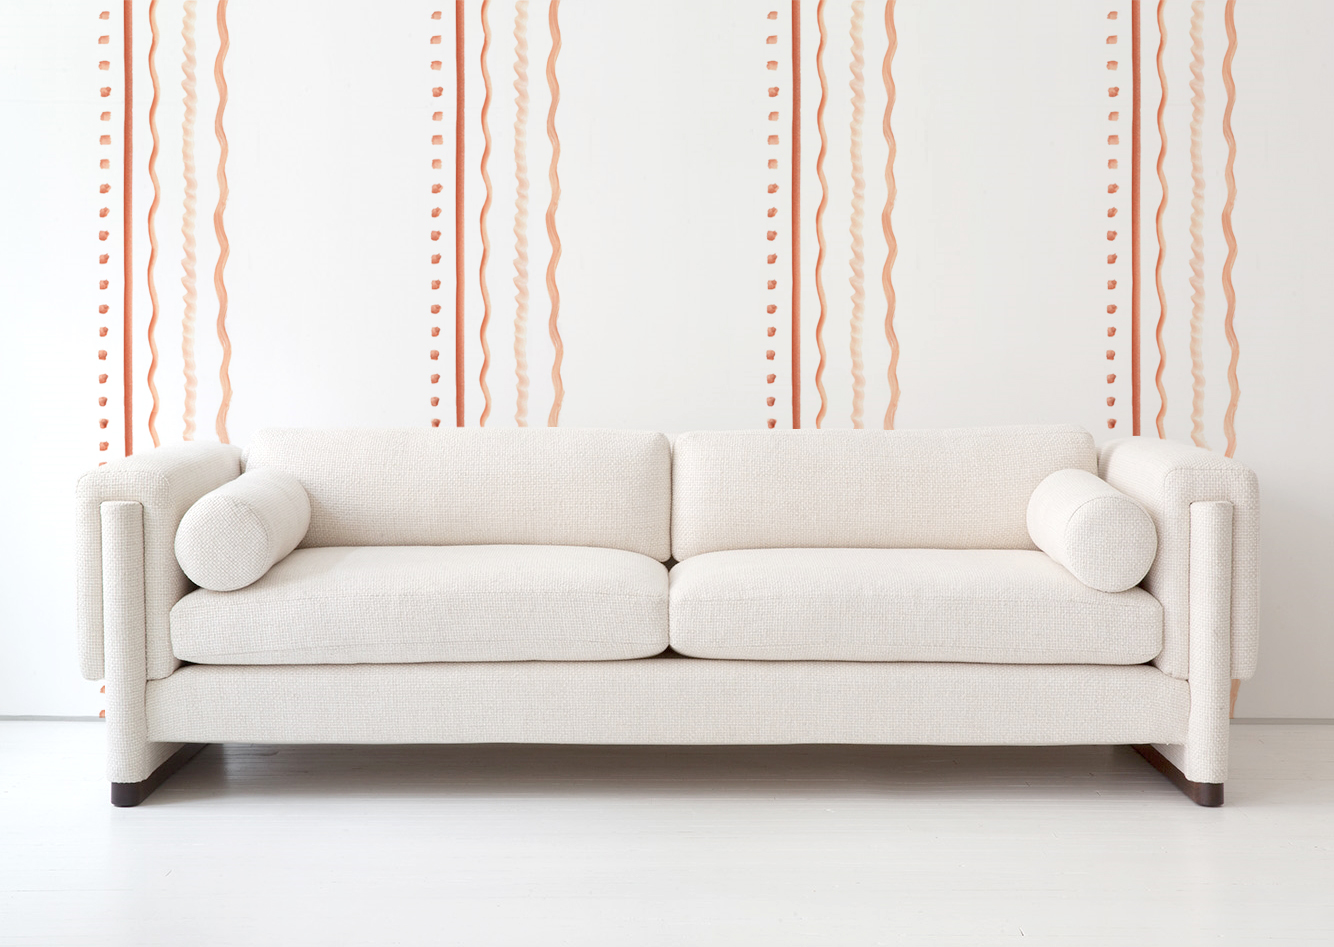 Features  New Deco: Palais Reposable Wallpaper  with the Howard Sofa by Egg Collective.  Visit the SHOP for details!